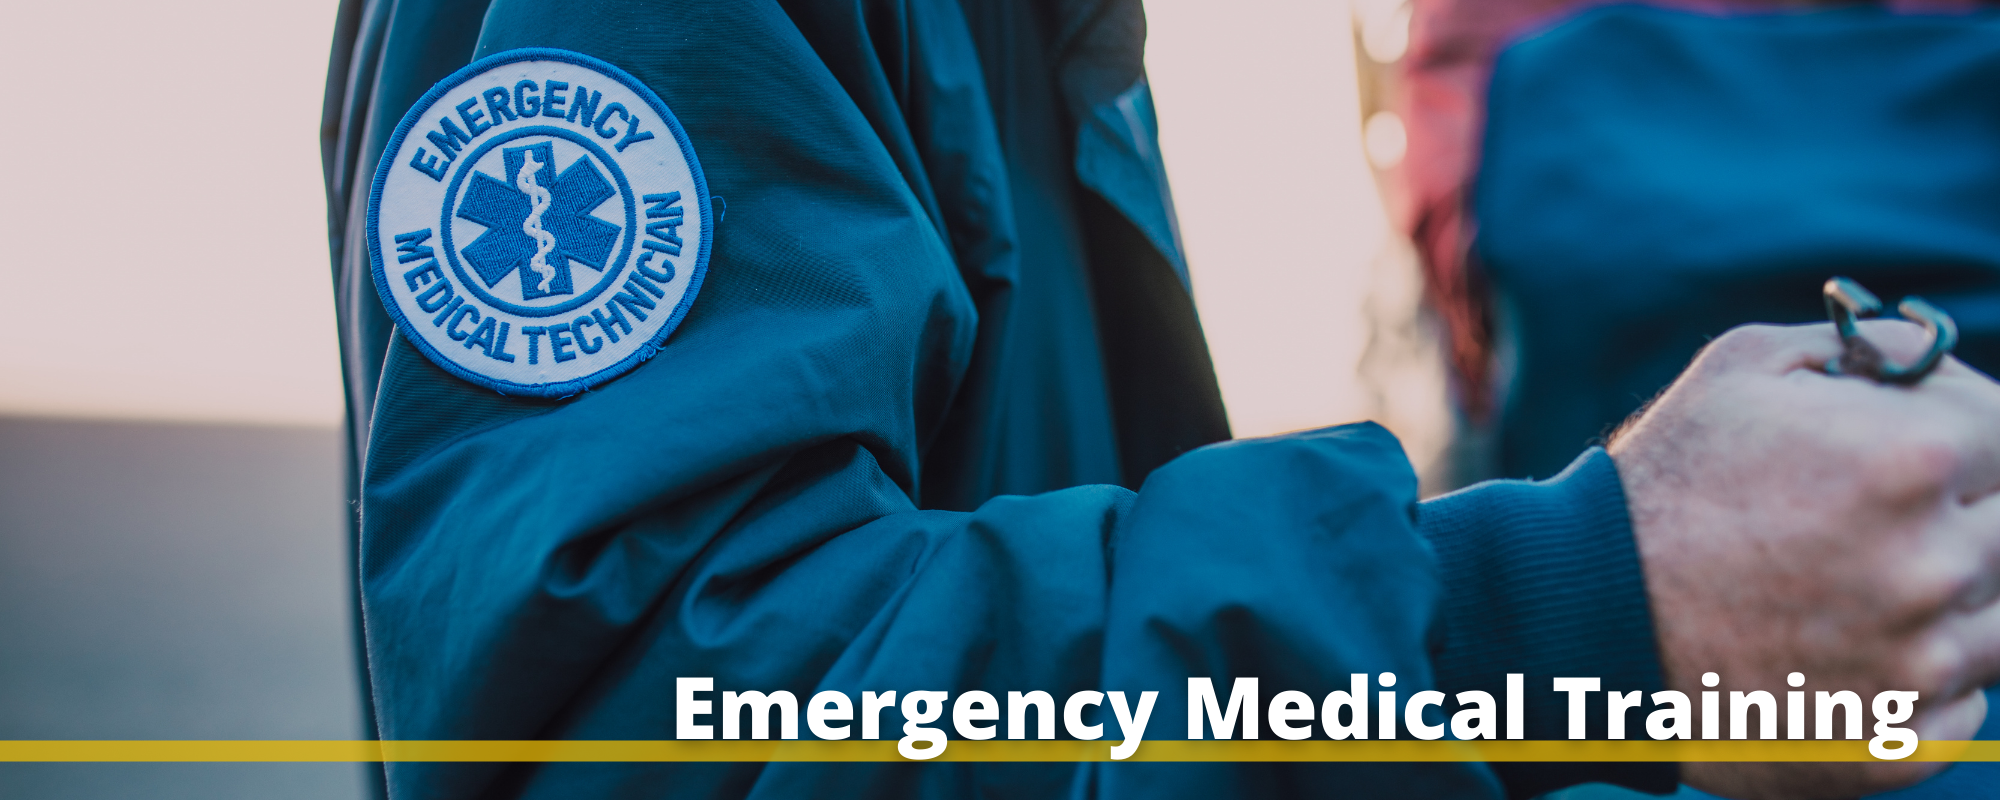 """Image of a person in an EMT uniform with the words """"Emergency Medical Training"""" printed below"""